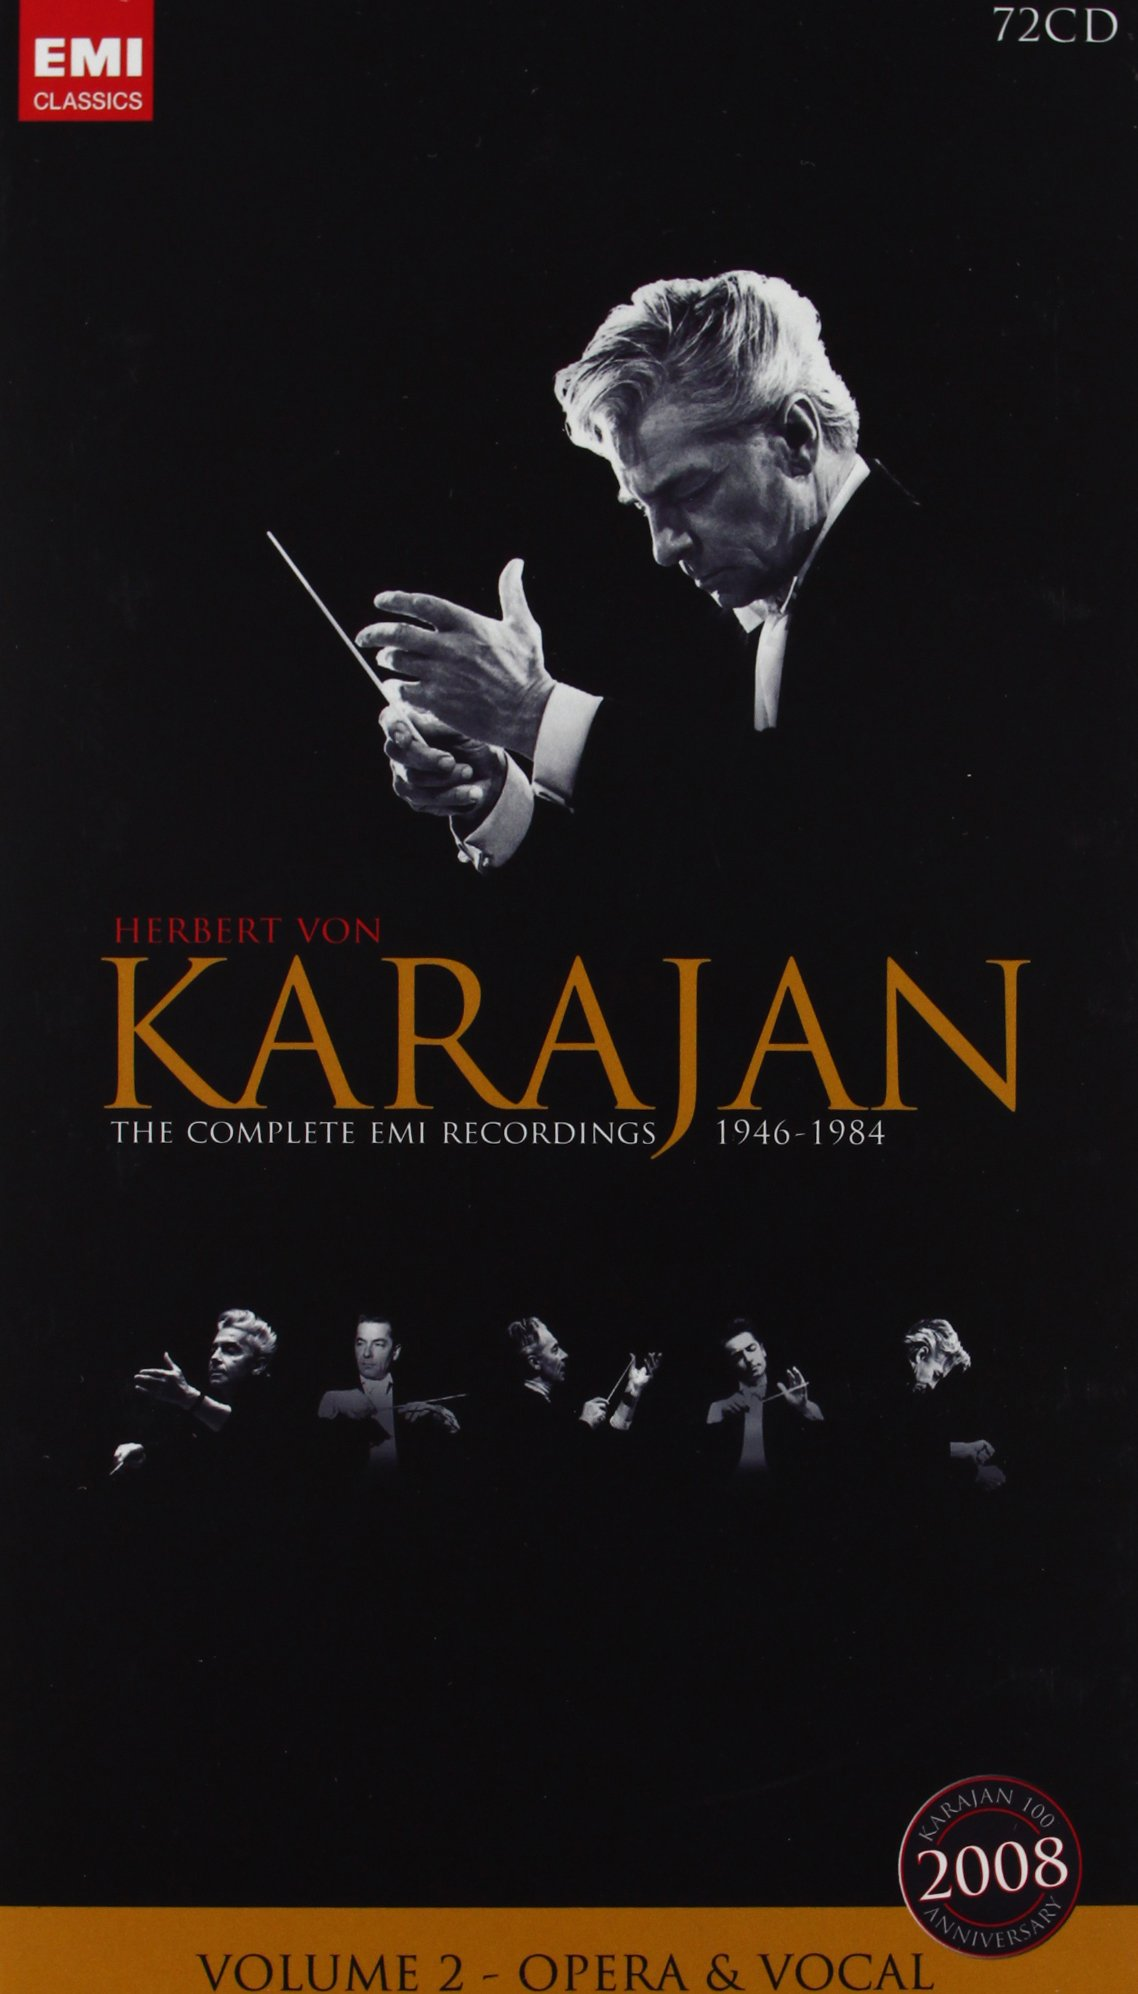 Karajan 100th - Volume 2, Opera and Vocals by EMI Classics